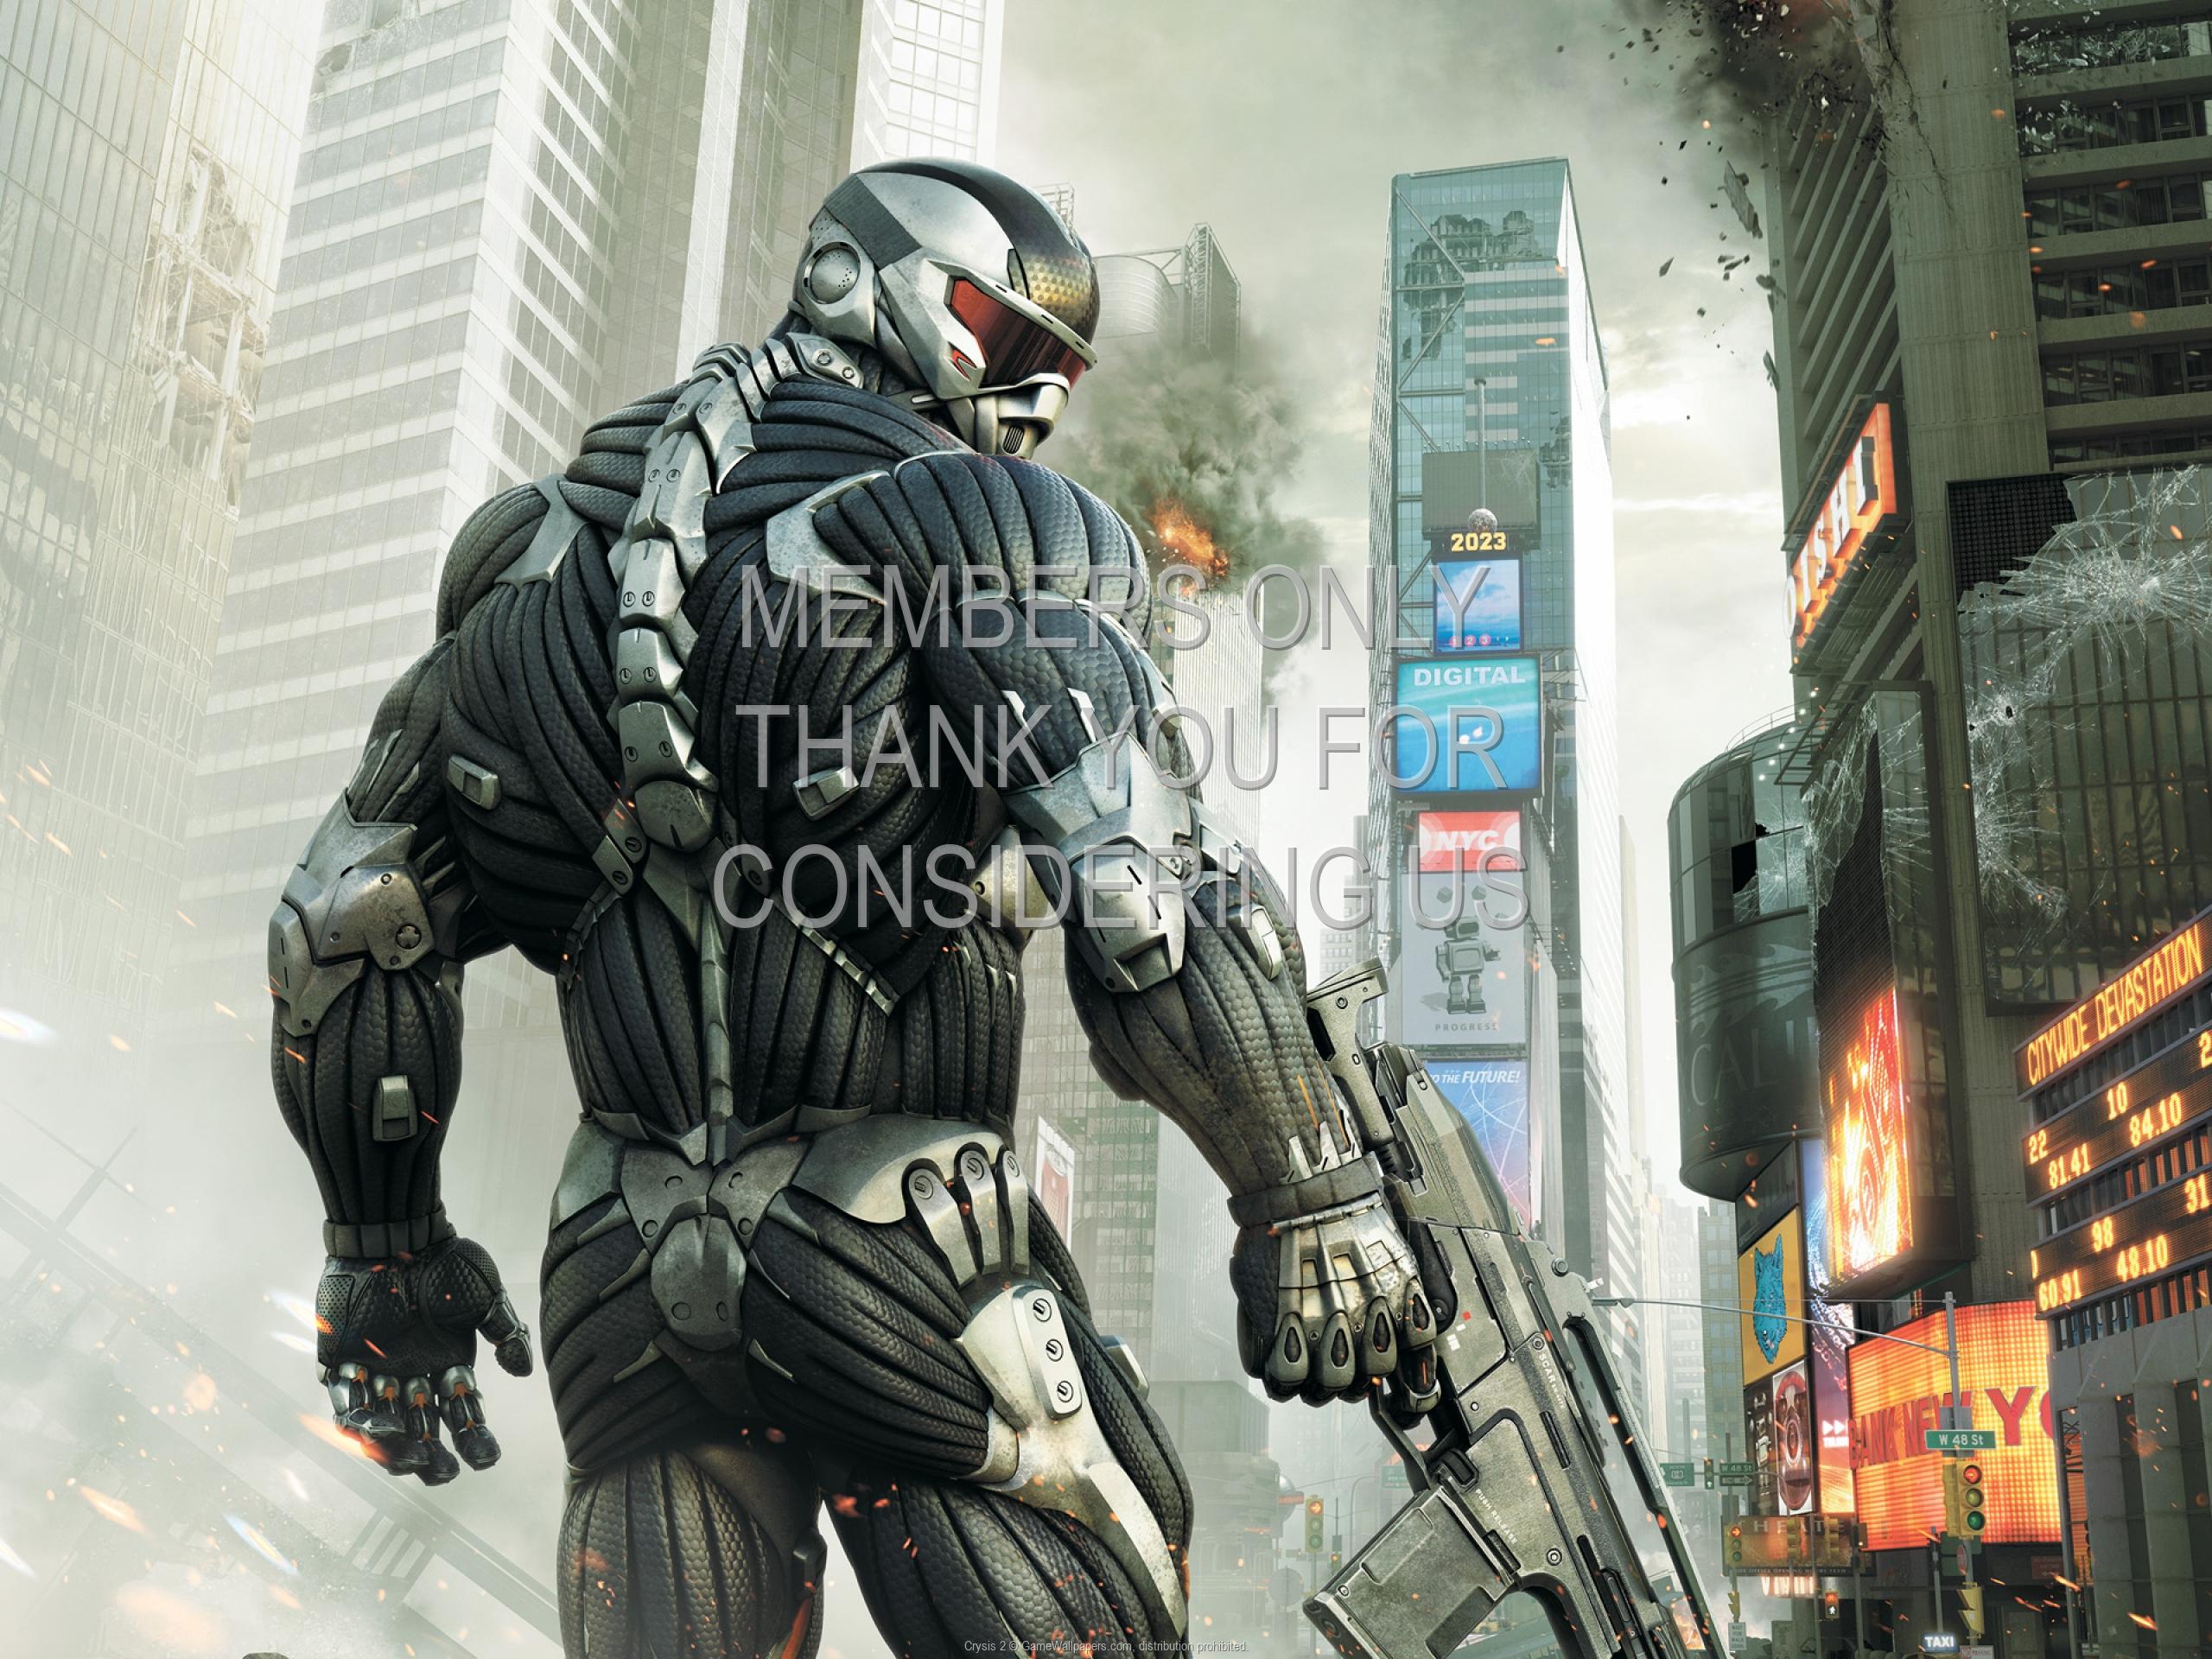 Crysis 2 1920x1080 Mobile wallpaper or background 09